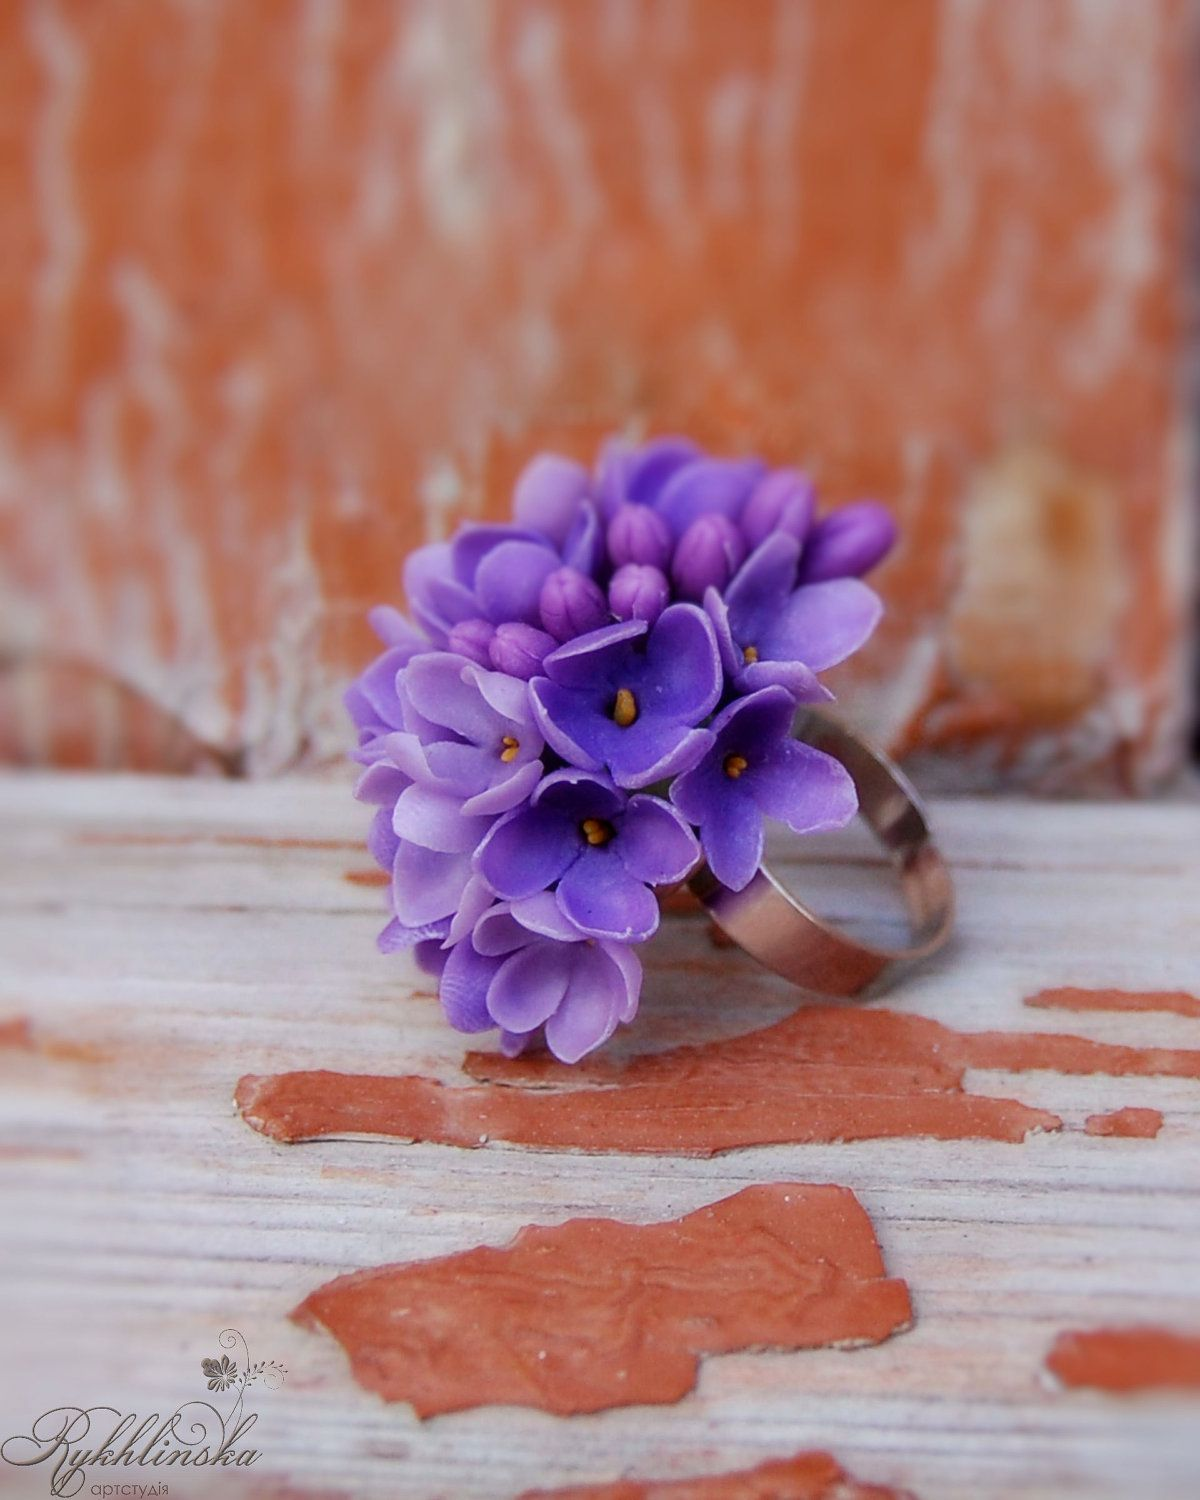 Lilac Ring Clay Flowers by Rykhlinksa Art Studio